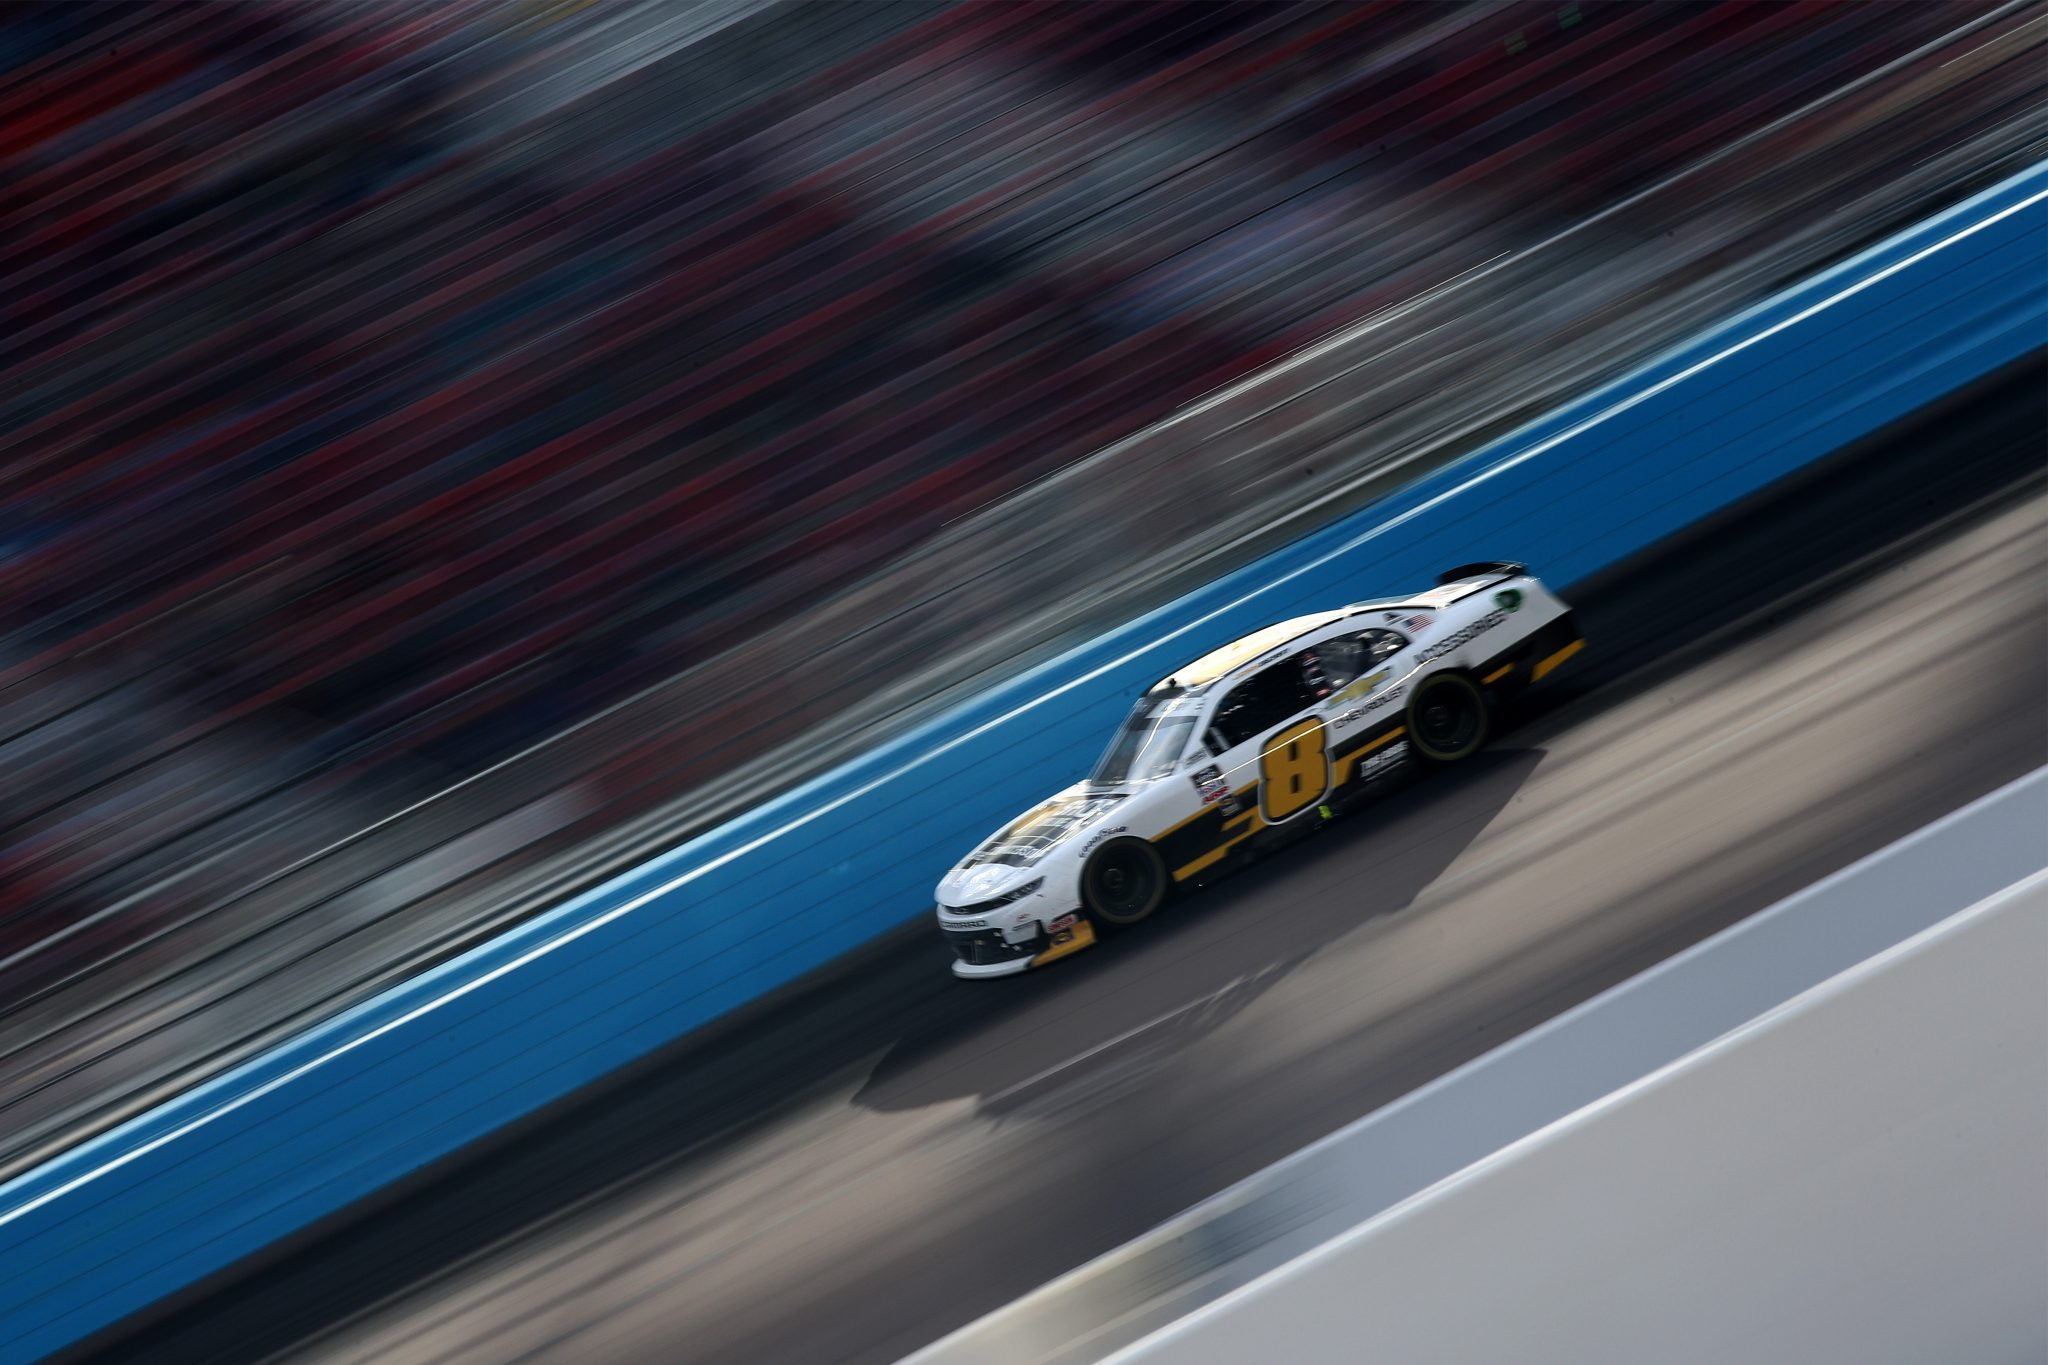 AVONDALE, ARIZONA - MARCH 13: Josh Berry, driver of the #8 Chevrolet Accessories Chevrolet, drives during the NASCAR Xfinity Series Call 811 Before You Dig 200 presented by Arizona 811 at Phoenix Raceway on March 13, 2021 in Avondale, Arizona. (Photo by Sean Gardner/Getty Images)   Getty Images